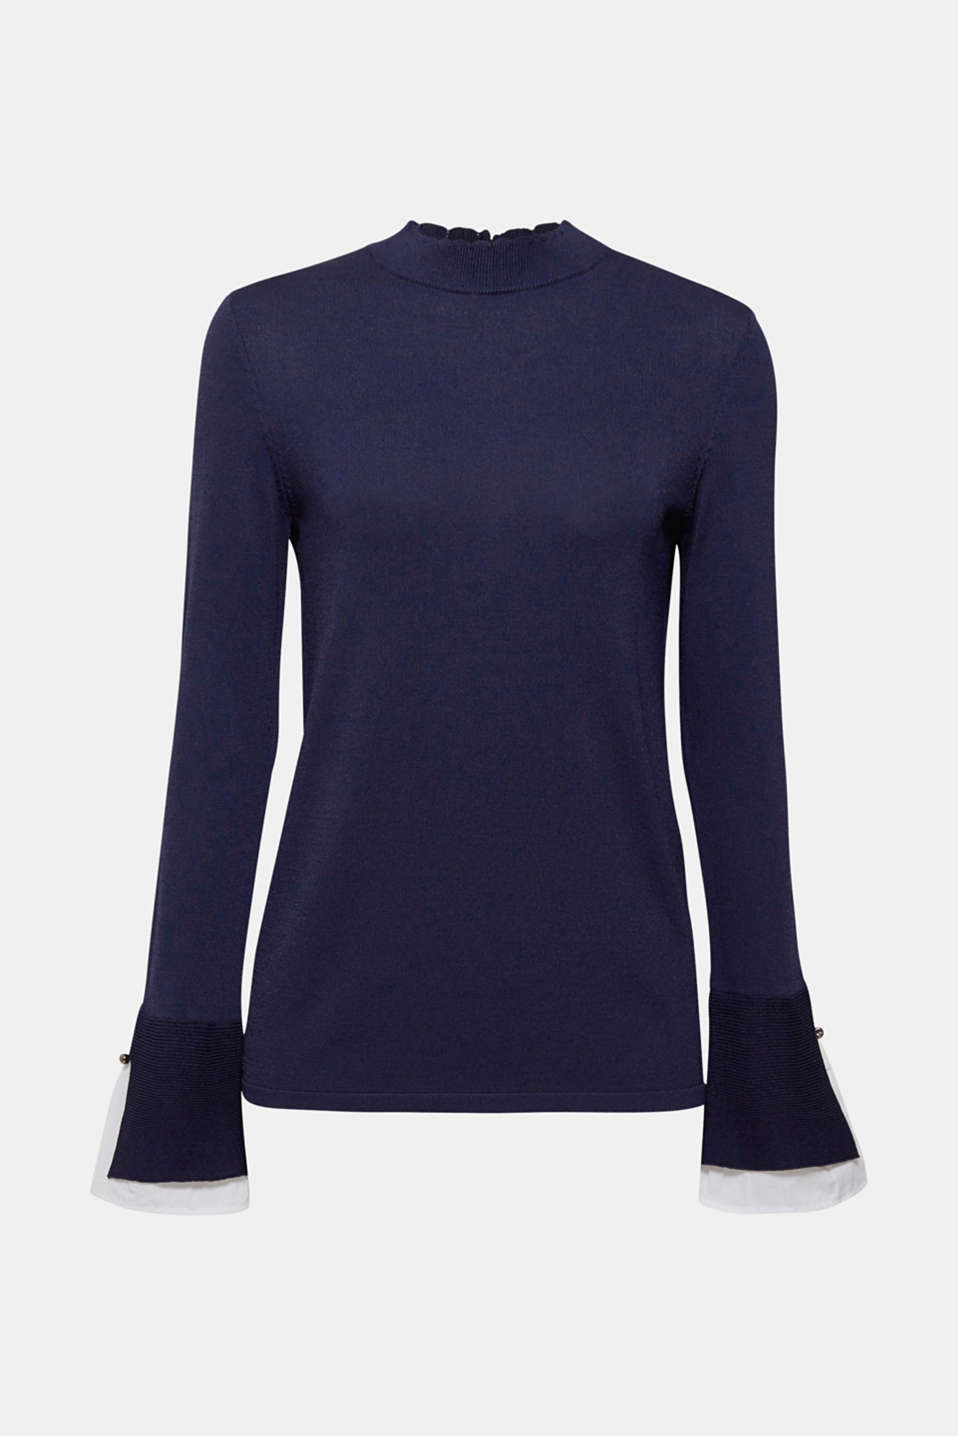 Whole new knit: Fine crêpe fabric with a cool texture, stand-up collar with a beautiful edge and layer-look cuffs give this jumper its modern look!